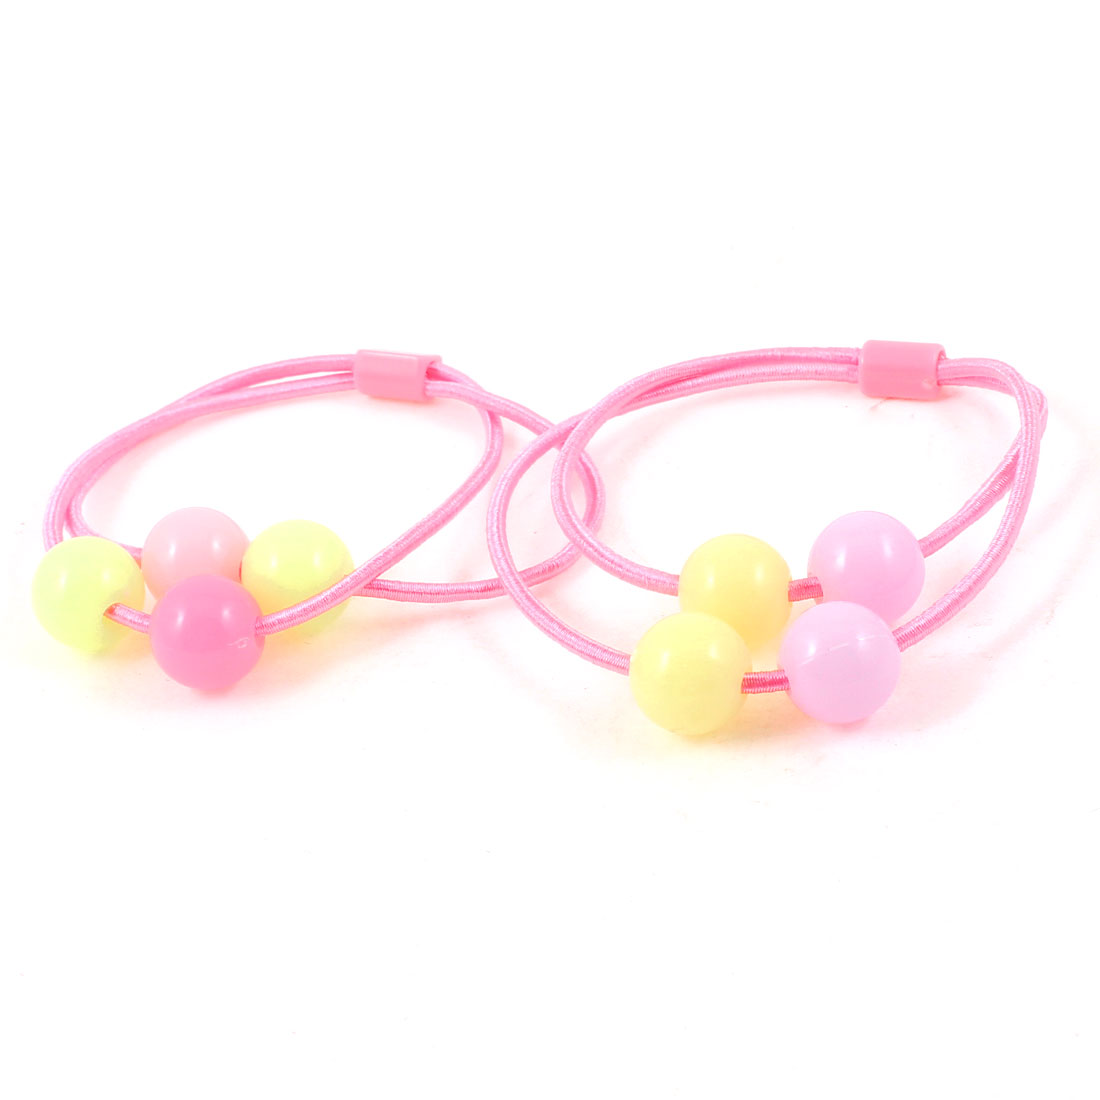 2 Pcs Purple Heart Plastic Beads Detail Stretch Hair Band Ponytail Holders